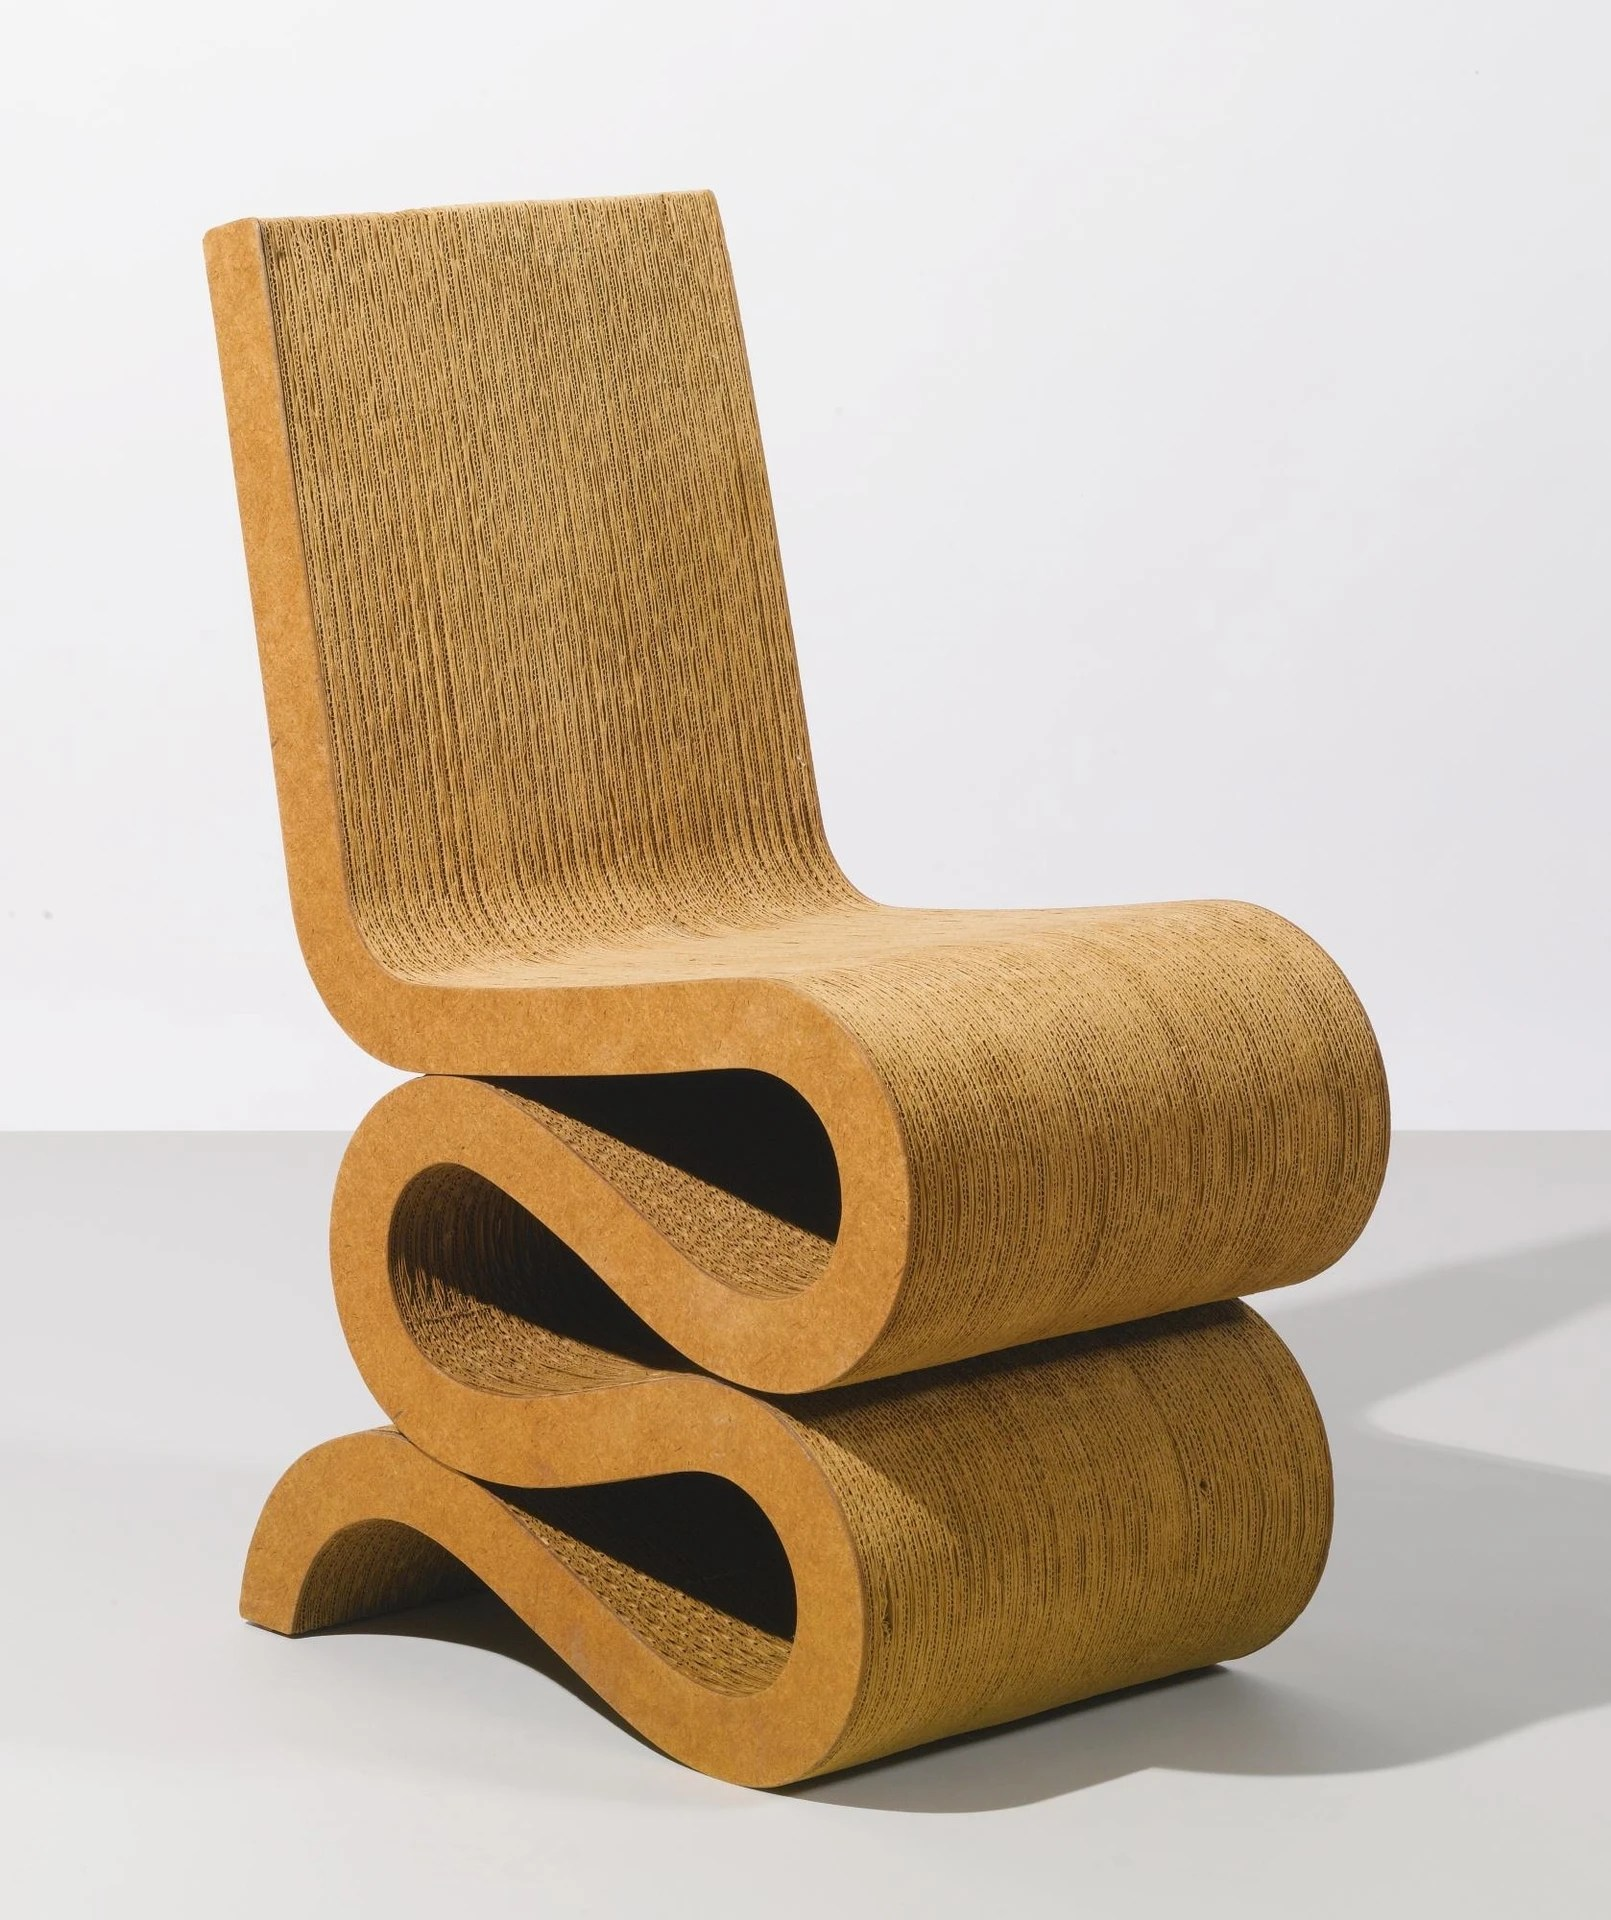 Frank Gehry  Prototype Wiggle Chair 1971